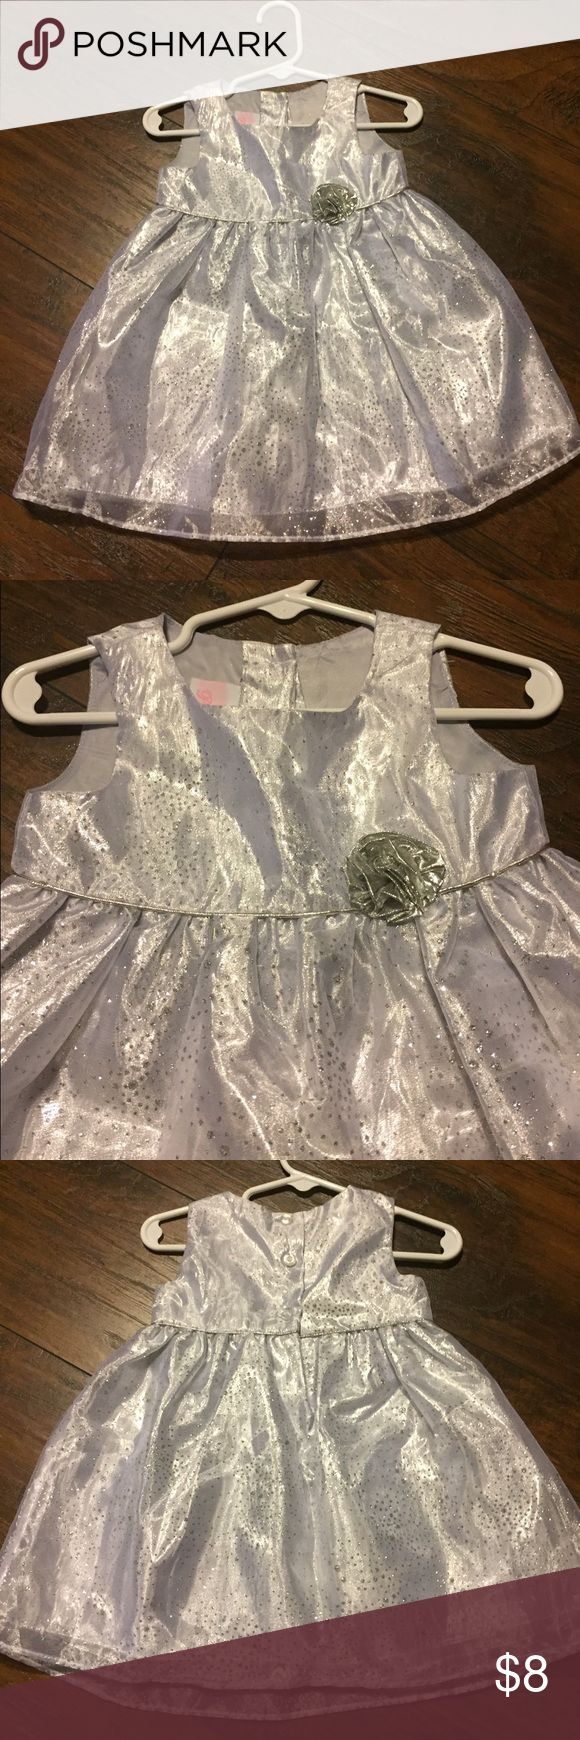 La Princess 12 month silver dress Adorable La Princess 12 month silver dress. Excellent condition as it was worn once for Christmas pictures. Both the dress and the lining  are 100% polyester. There is a sheer layer over the metallic layer. The dress has a three-dimensional flower on the front and three button closure in the back. La Princess Dresses